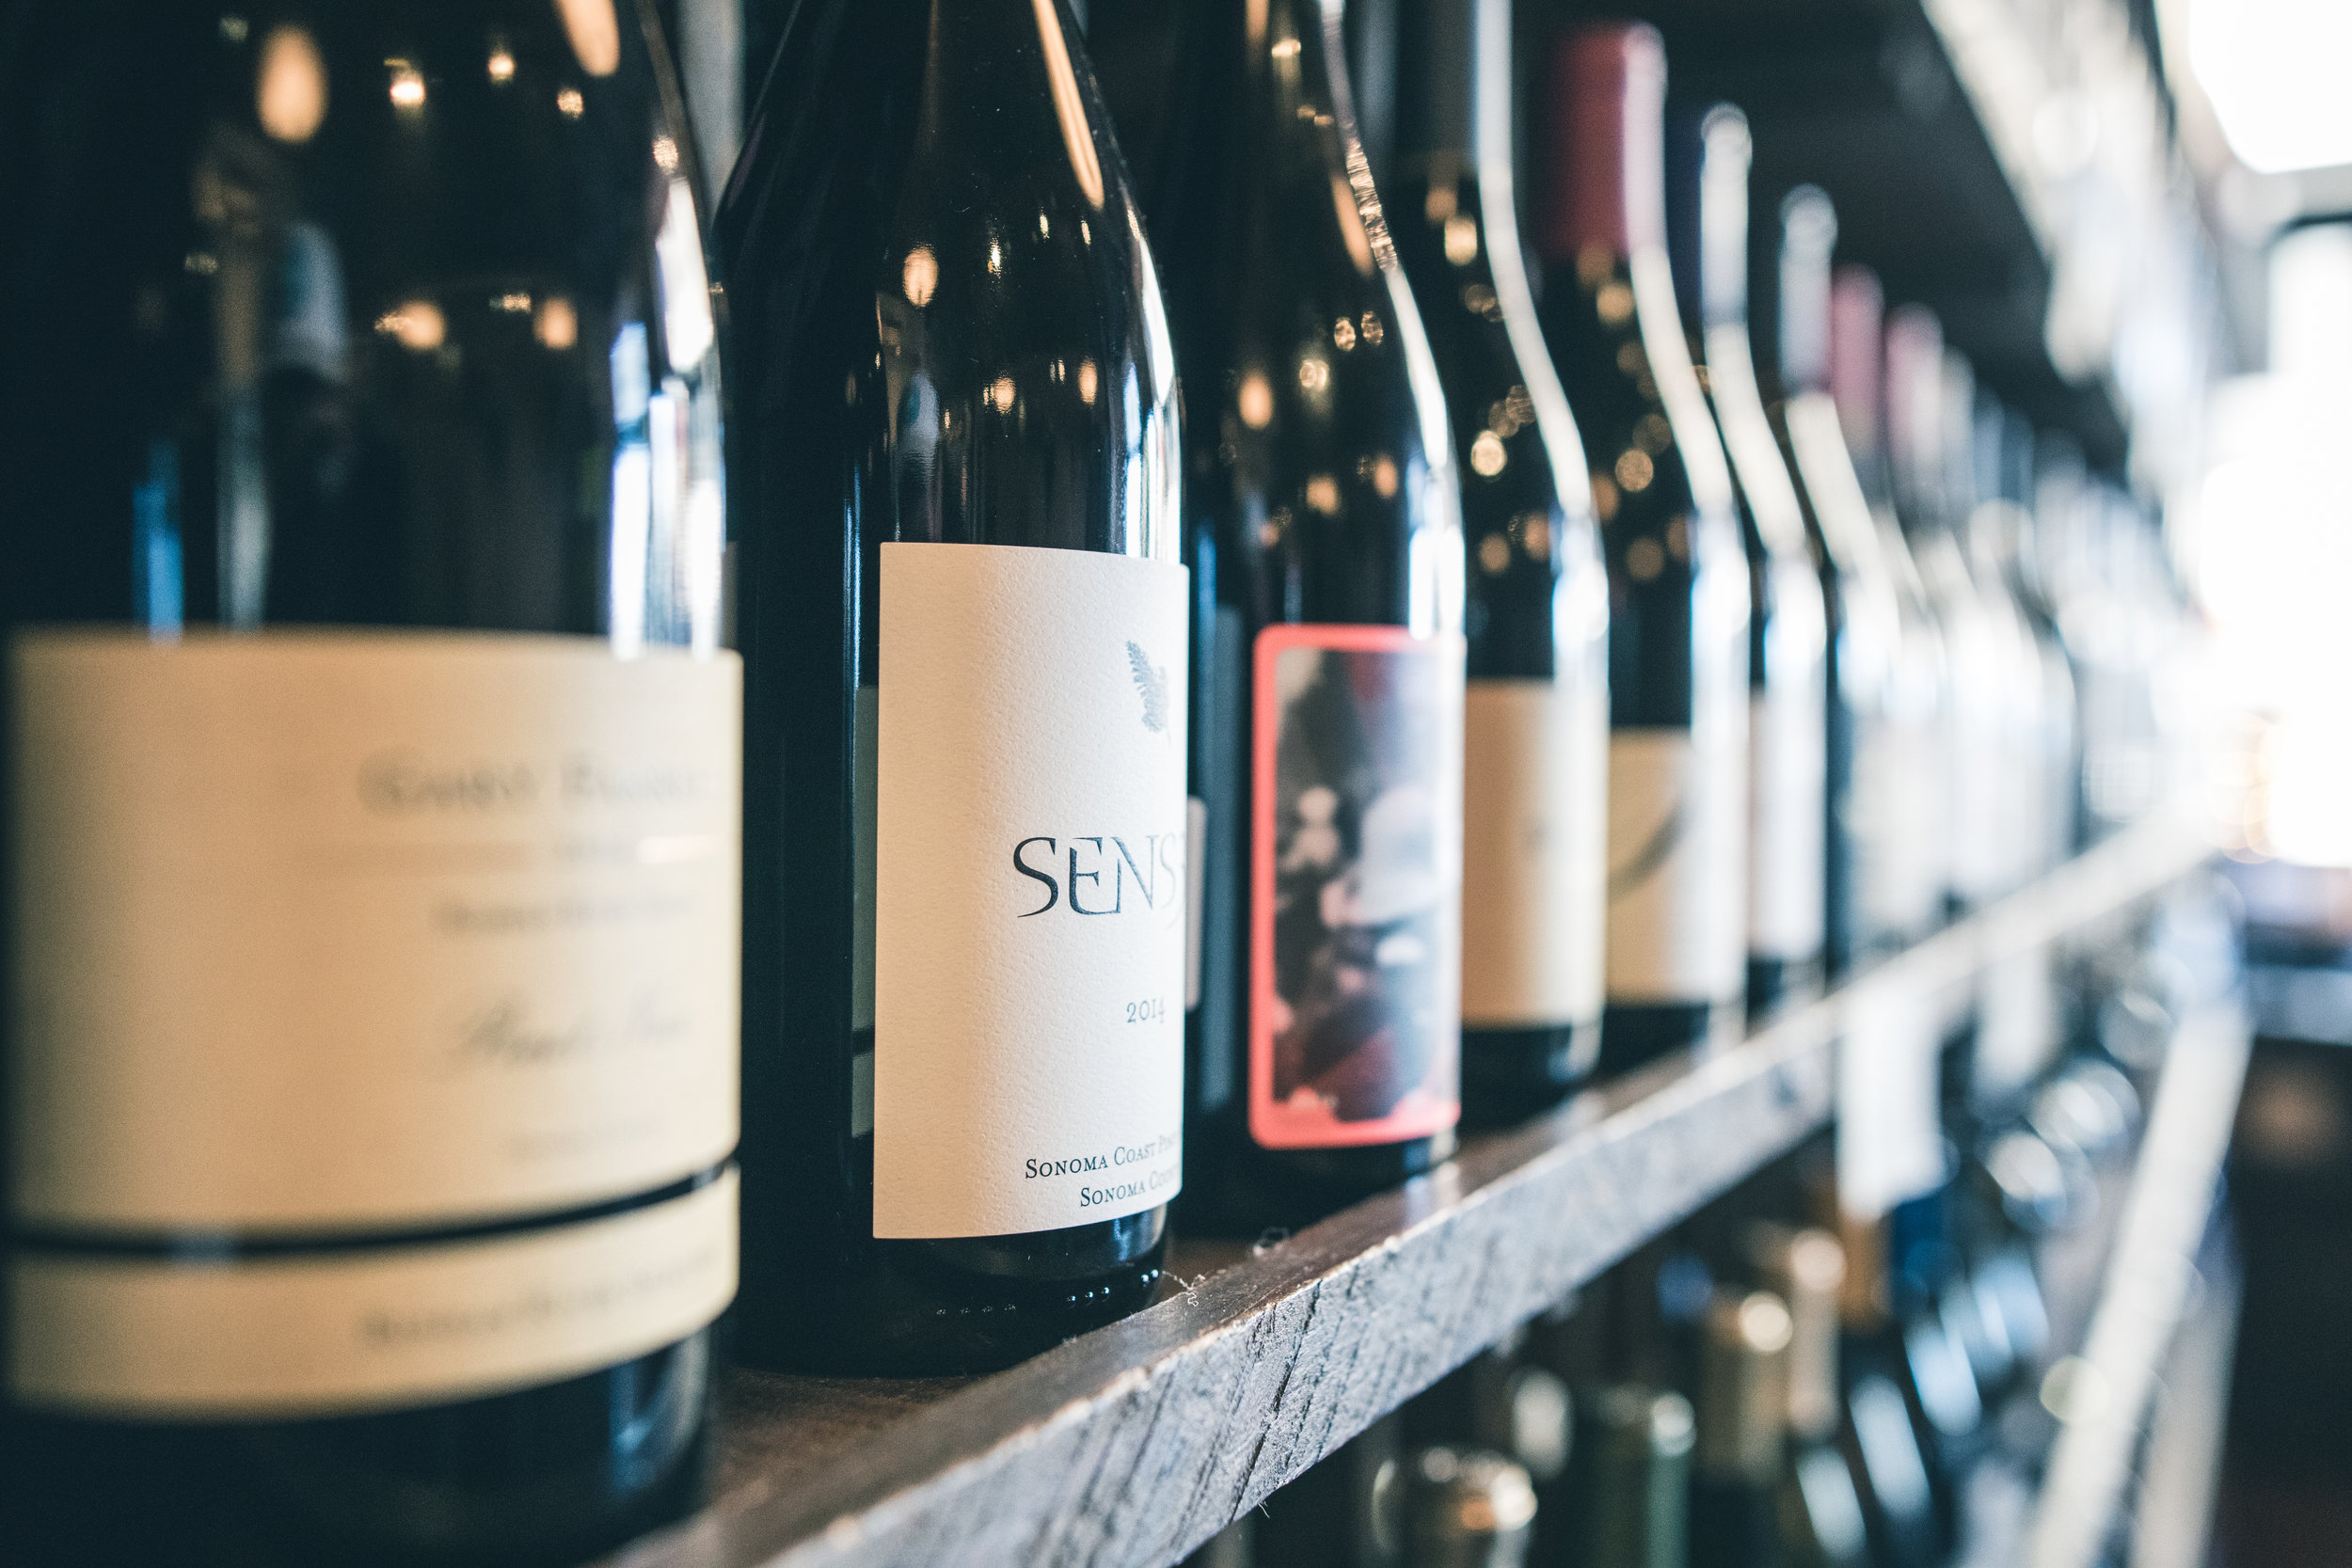 Specialist wine festival to toast sustainable drinks trade between Portugal and Bristol -